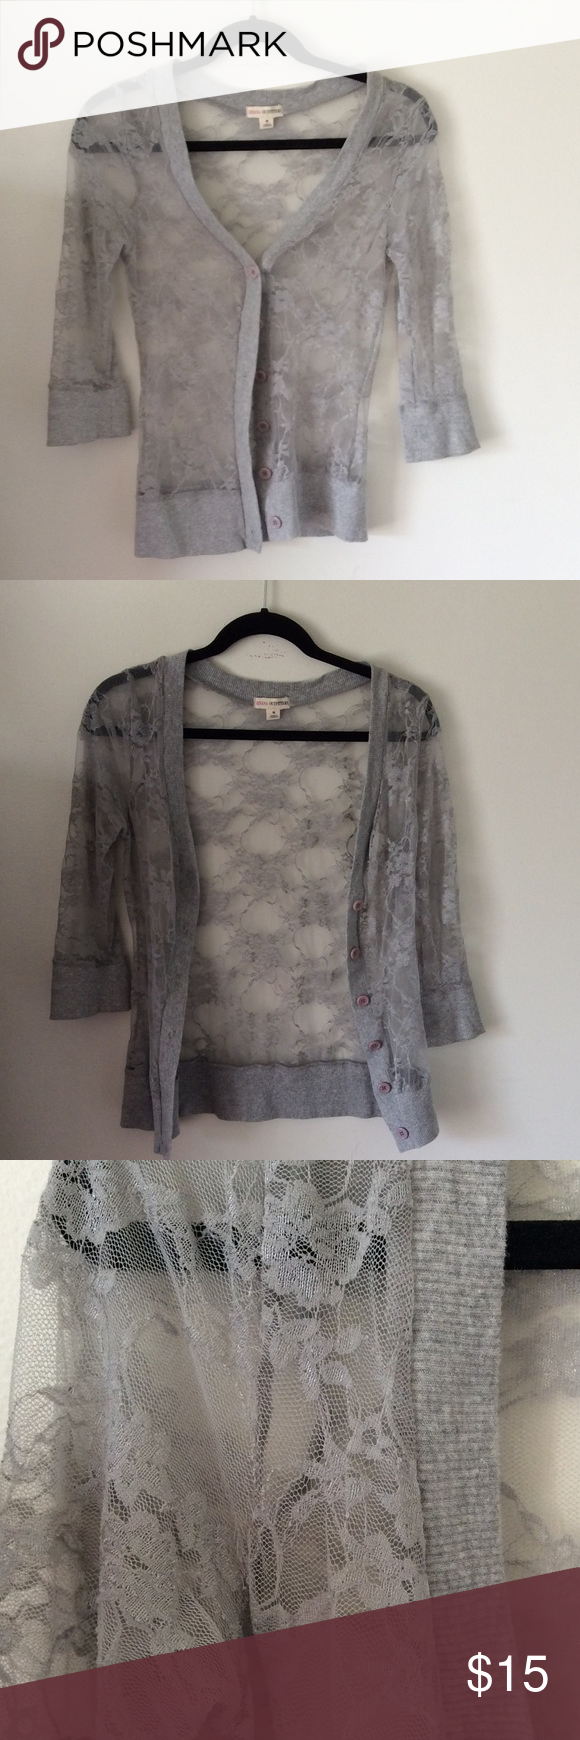 Sheer lace grey cardigan   Summer sweaters, Grey cardigan and ...